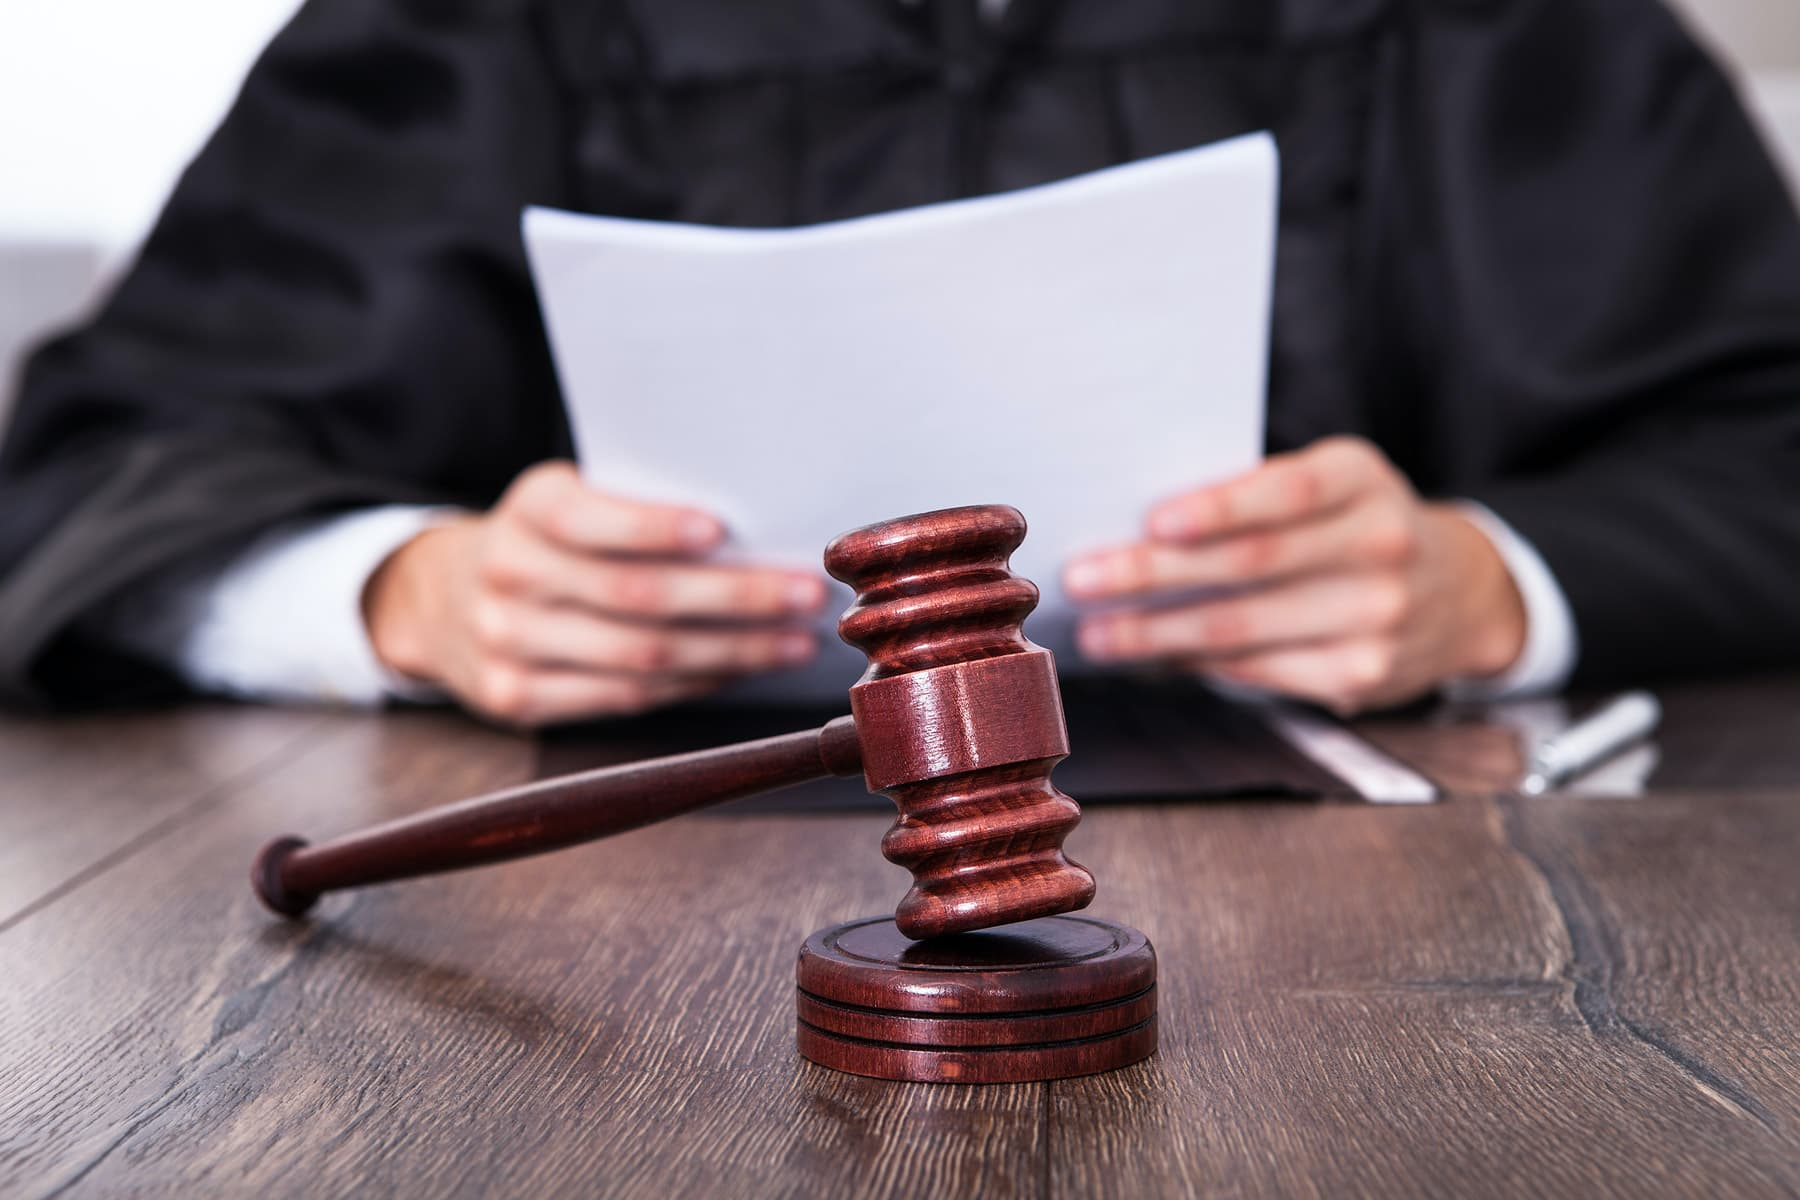 Win legal accidental damages